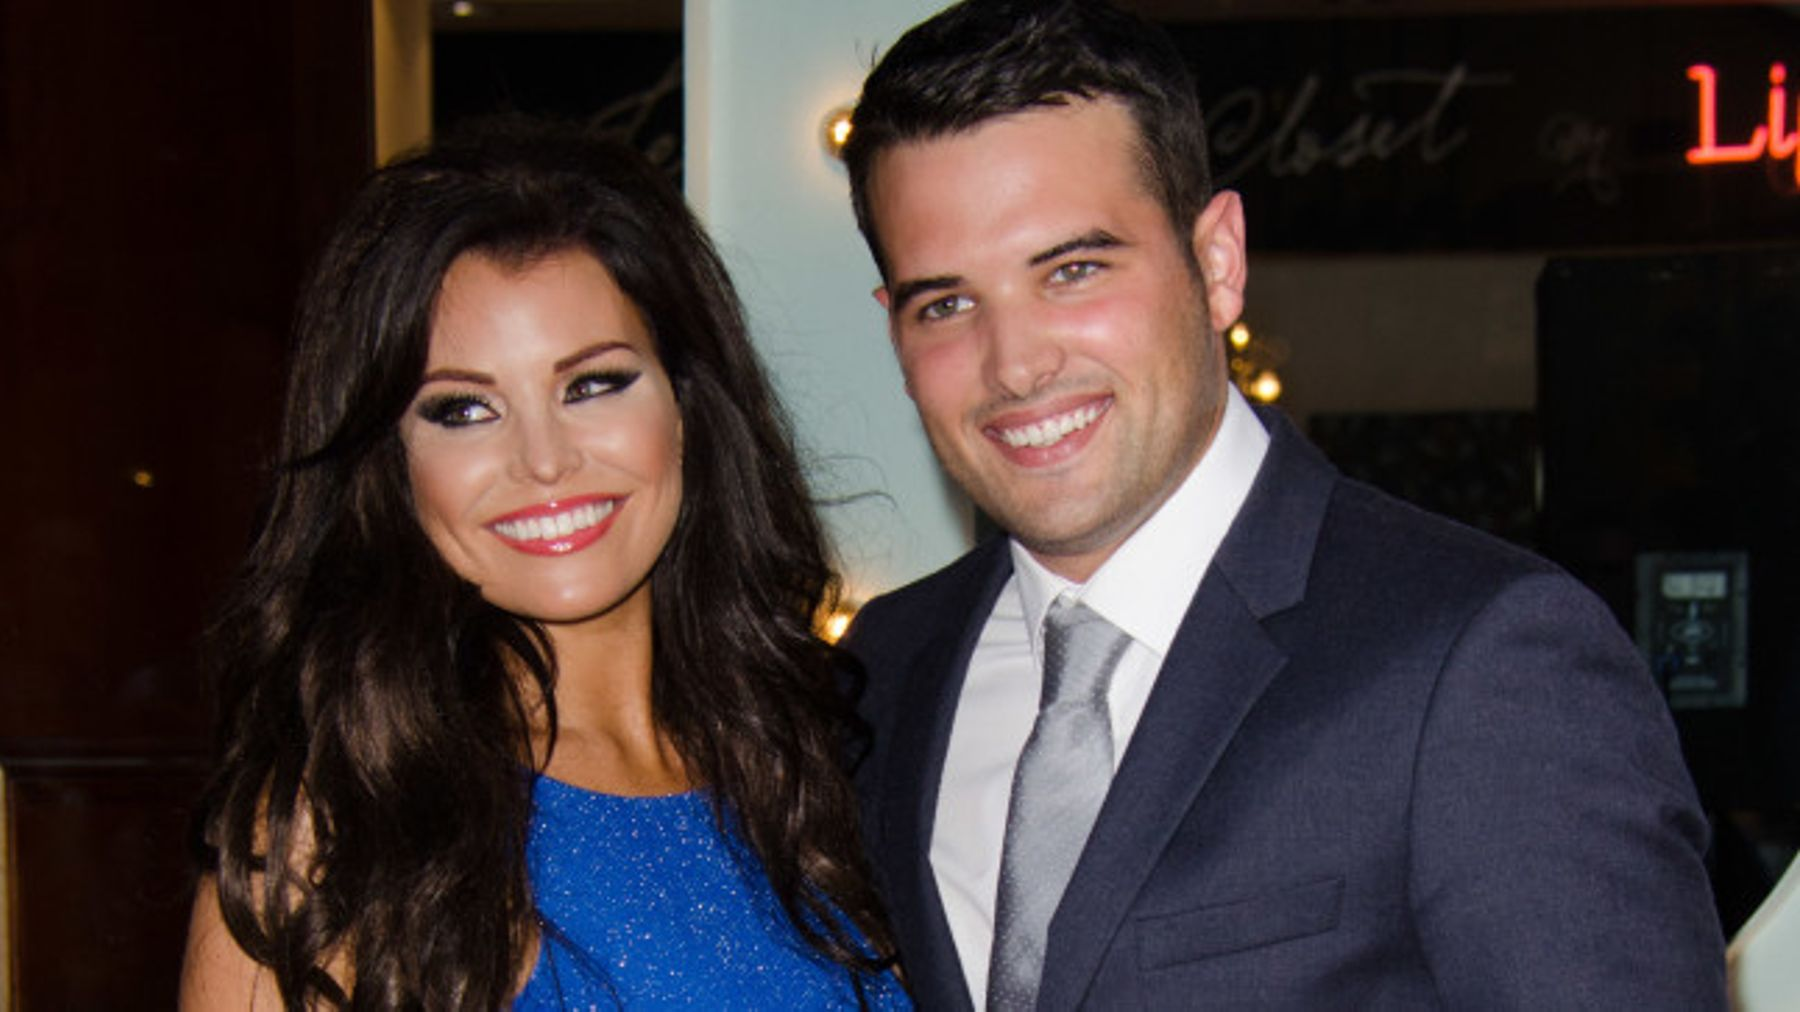 TOWIE's Jessica Wright responds to Ricky Rayment new girlfriend news